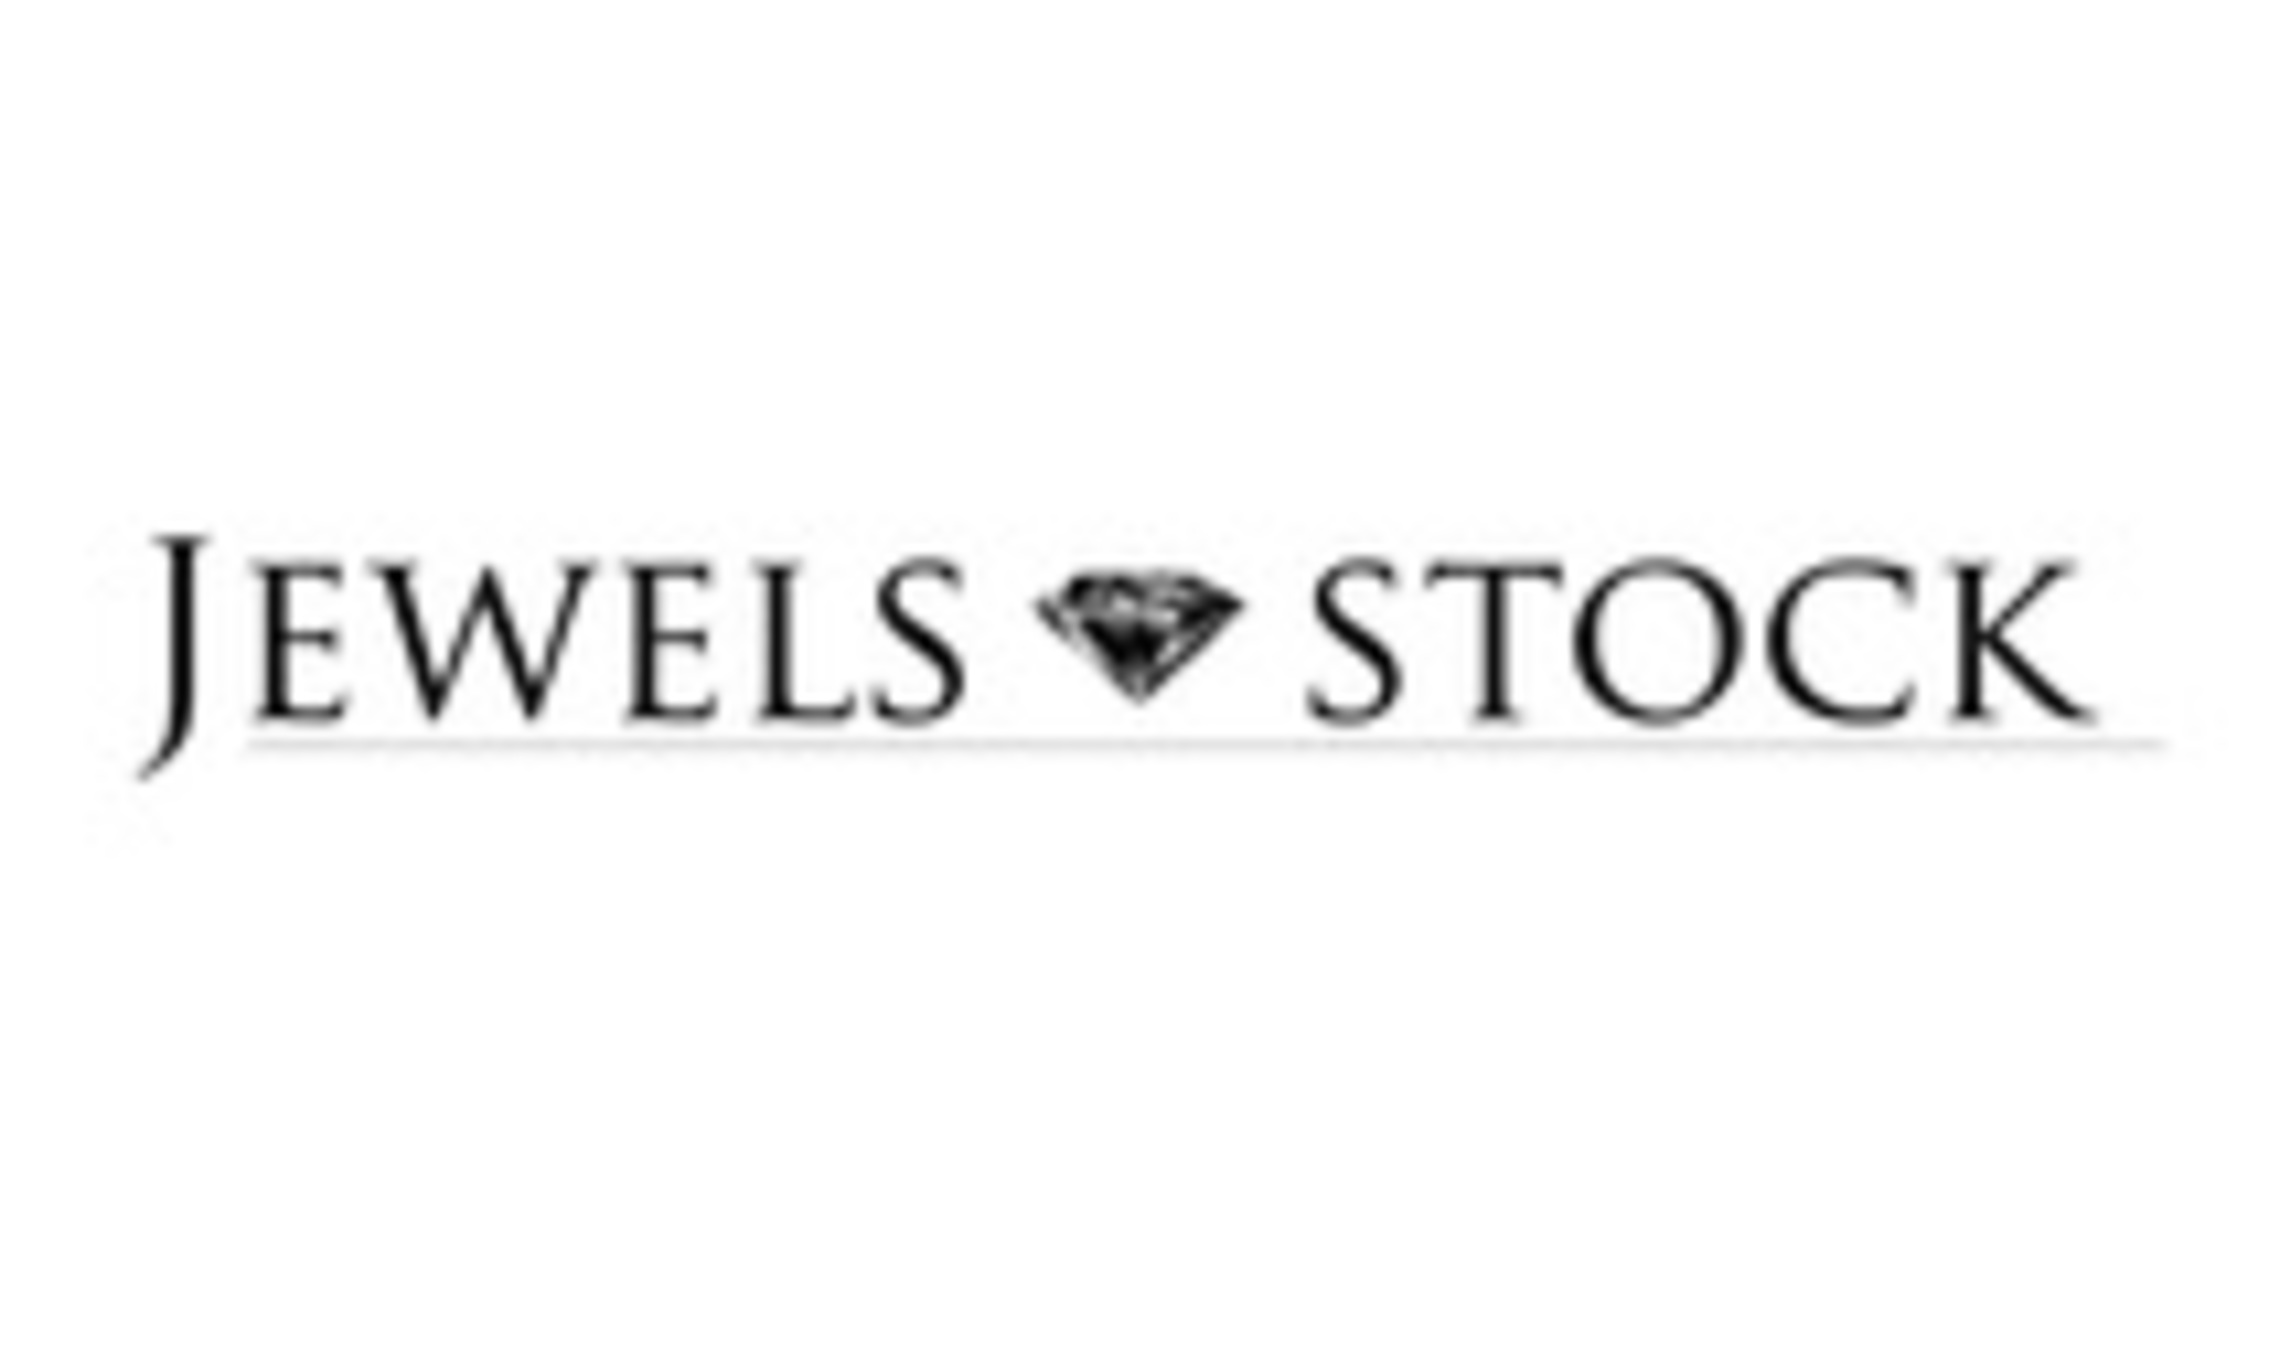 jewels stock watches- company logo